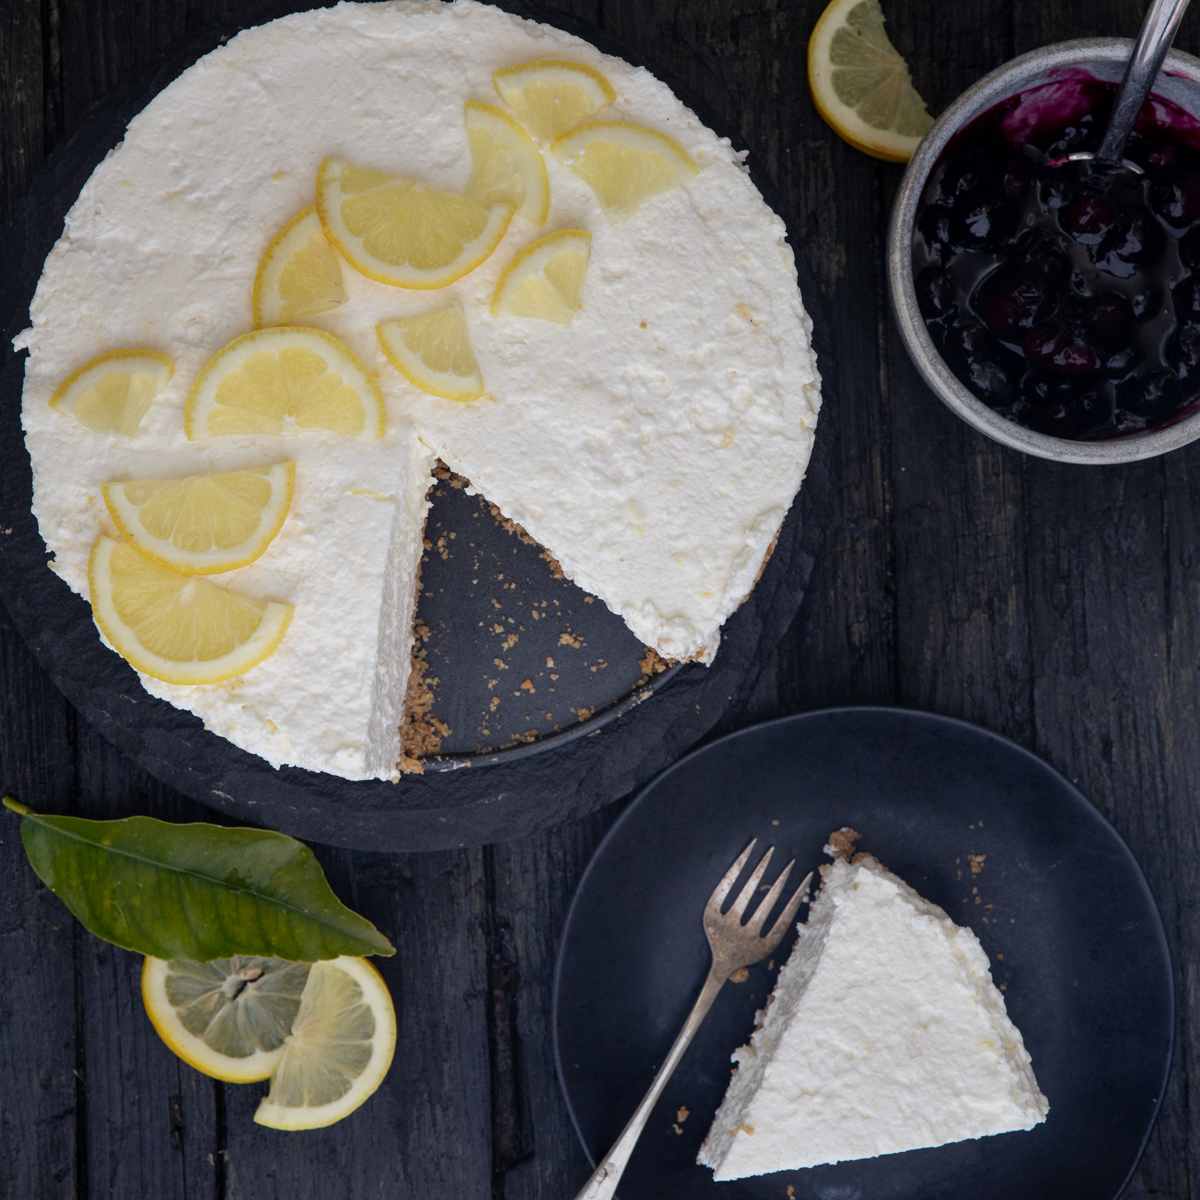 lemon cheesecake on a blackplate and a piece on a black plate.